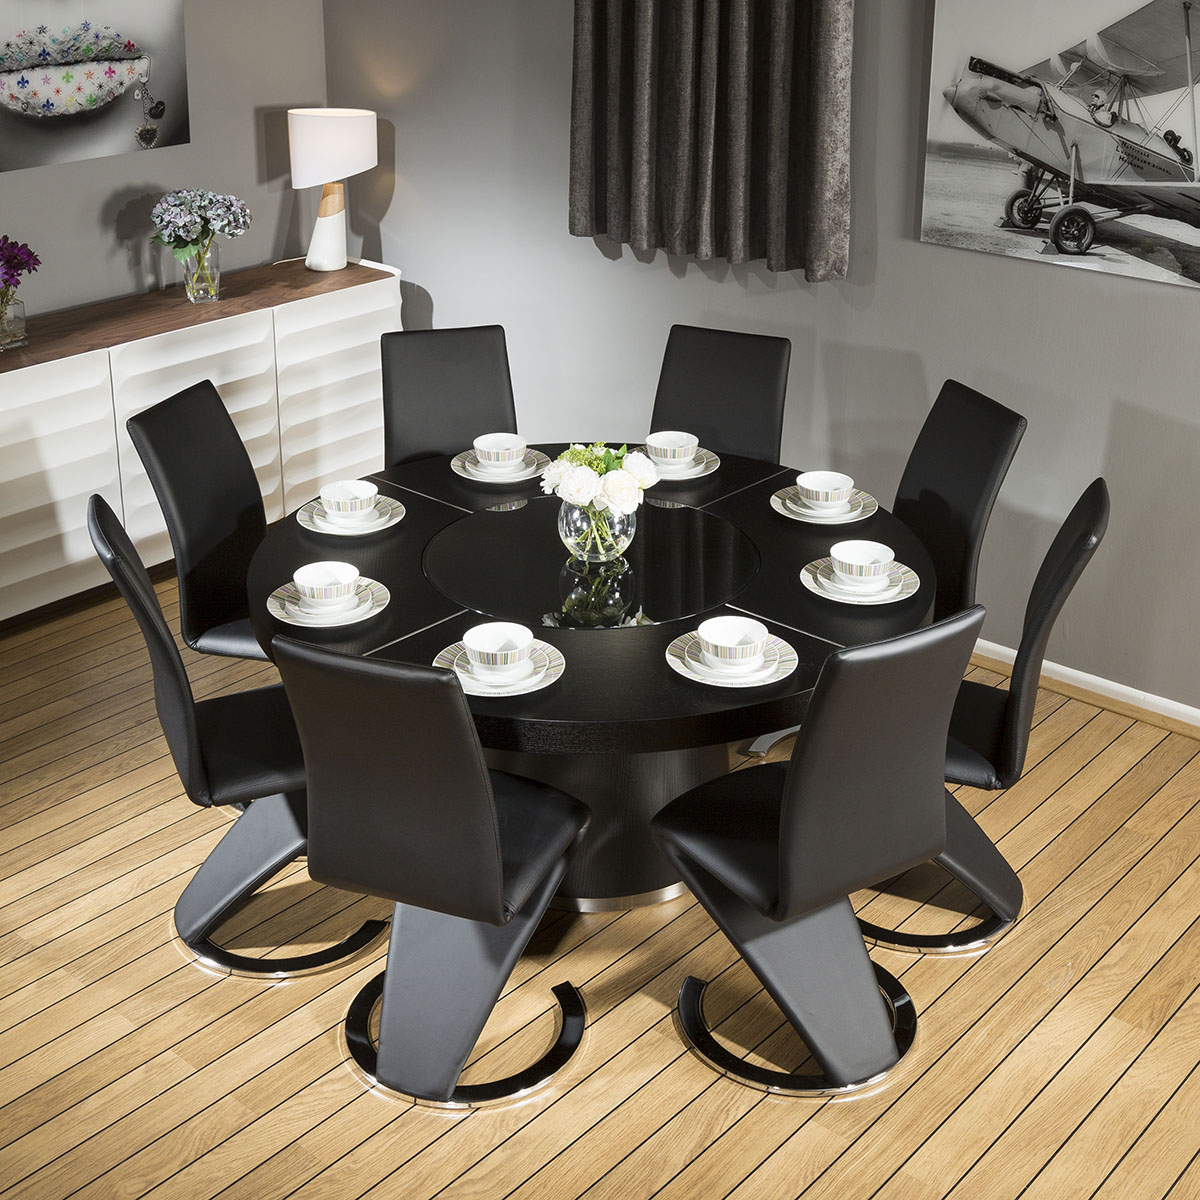 Details About Modern Large Round Black Oak Dining Table +8 Black Z Shape  Chairs 6736